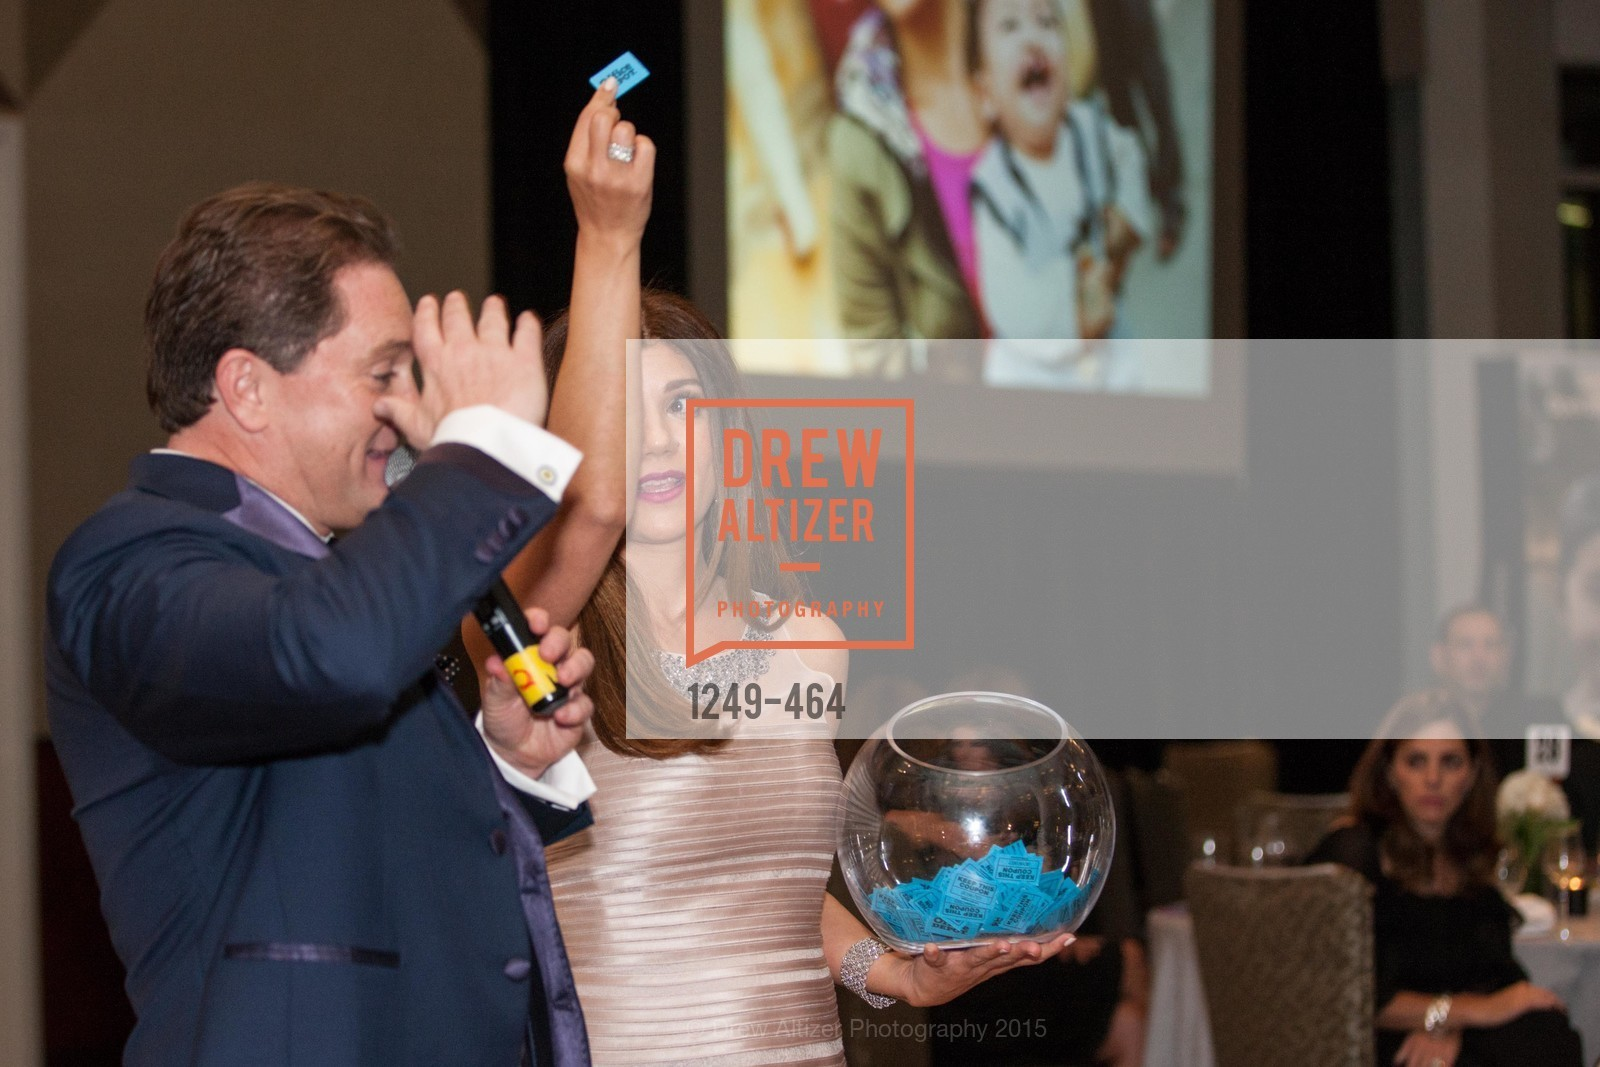 Liam Mayclem, Shabnam Farzaneh, Operation Smile Presents THE SAN FRANCISCO 2015 SMILE GALA, InterContinental Hotel, November 7th, 2015,Drew Altizer, Drew Altizer Photography, full-service agency, private events, San Francisco photographer, photographer california